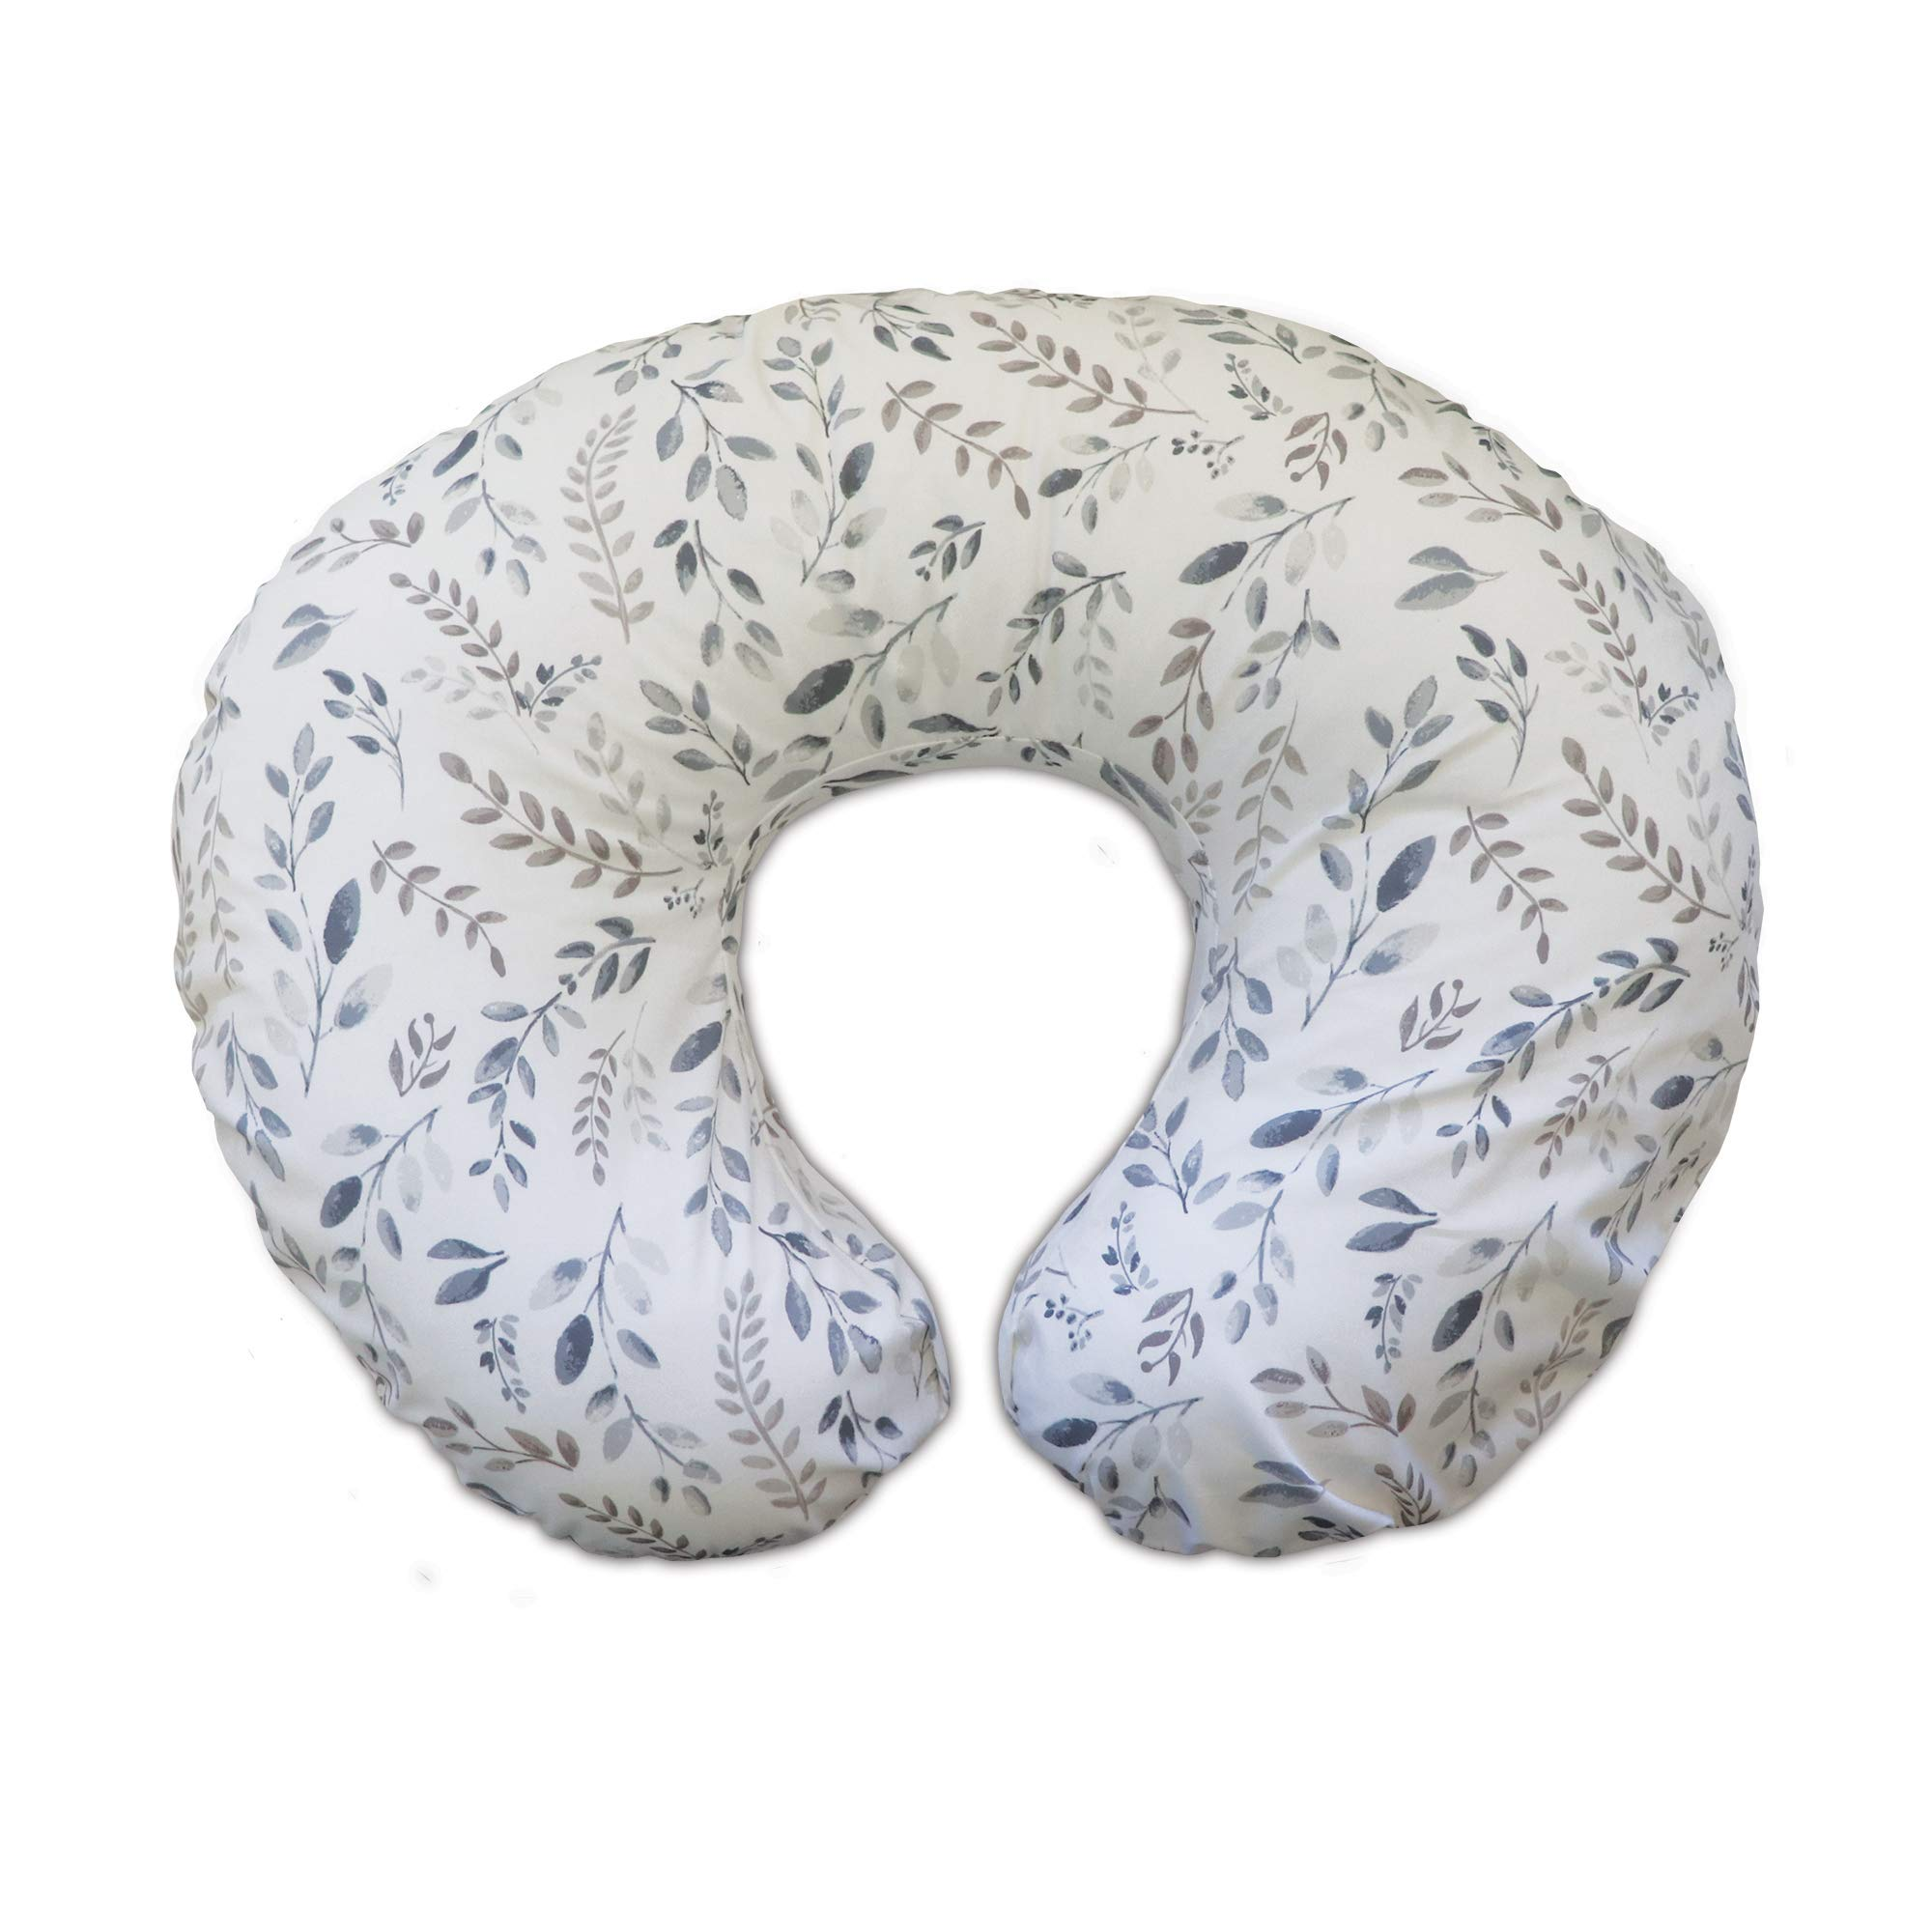 Boppy Original Nursing Pillow & Positioner, Gray Taupe Leaves, Cotton Blend Fabric with Allover Fashion by Boppy